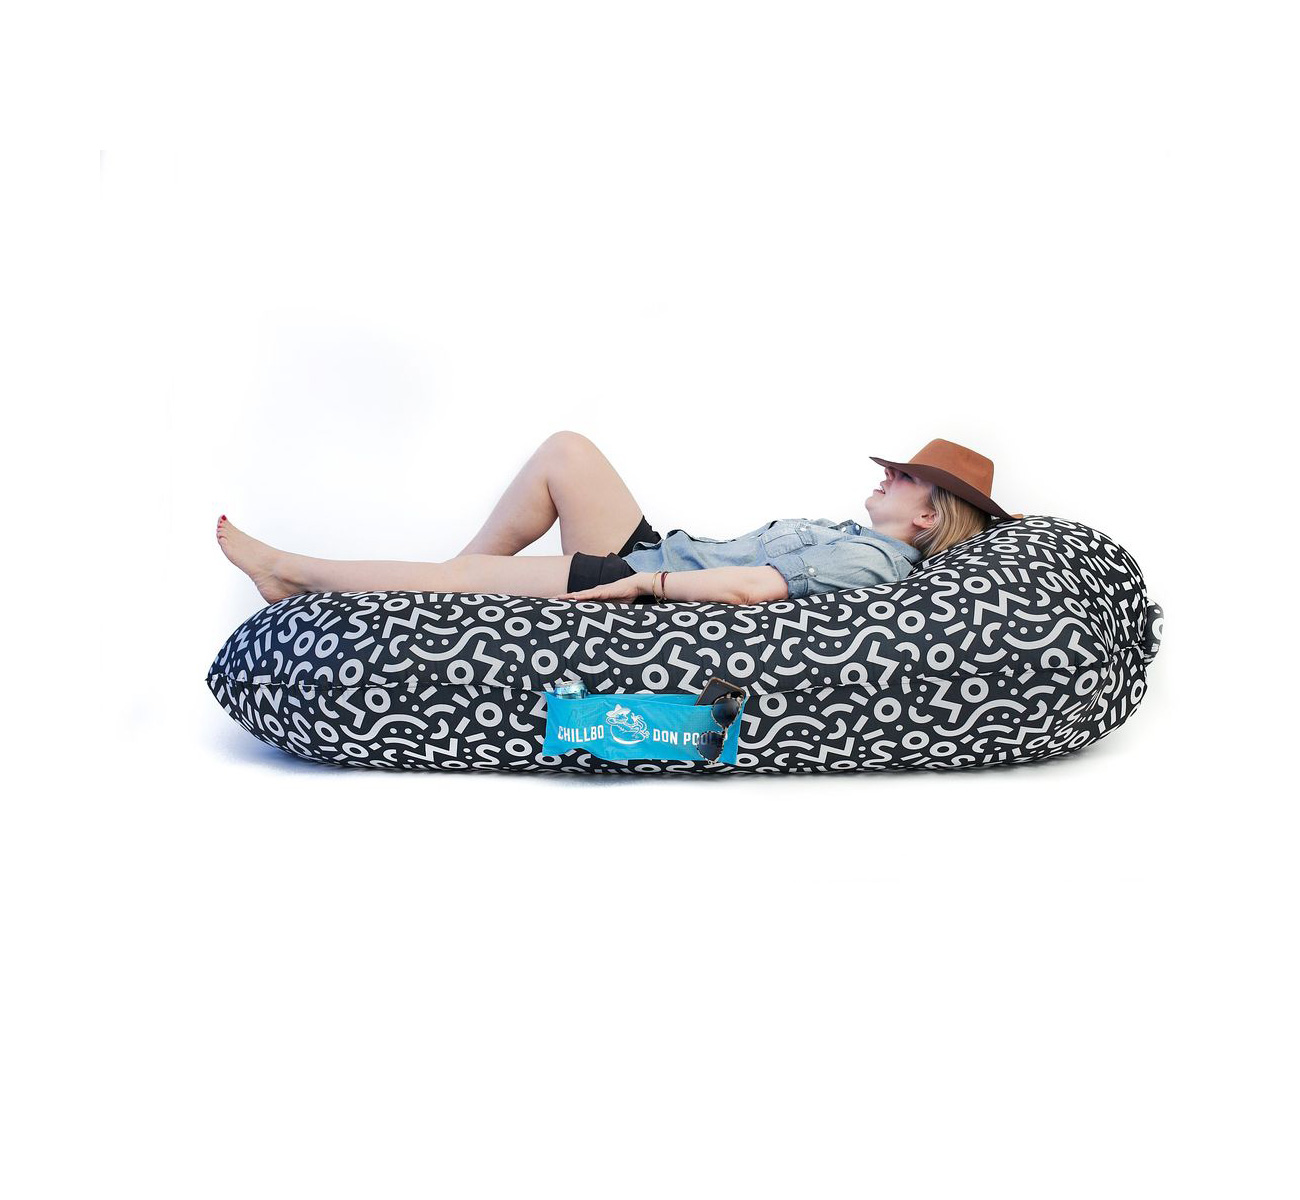 Chillbo Inflatable Loungers